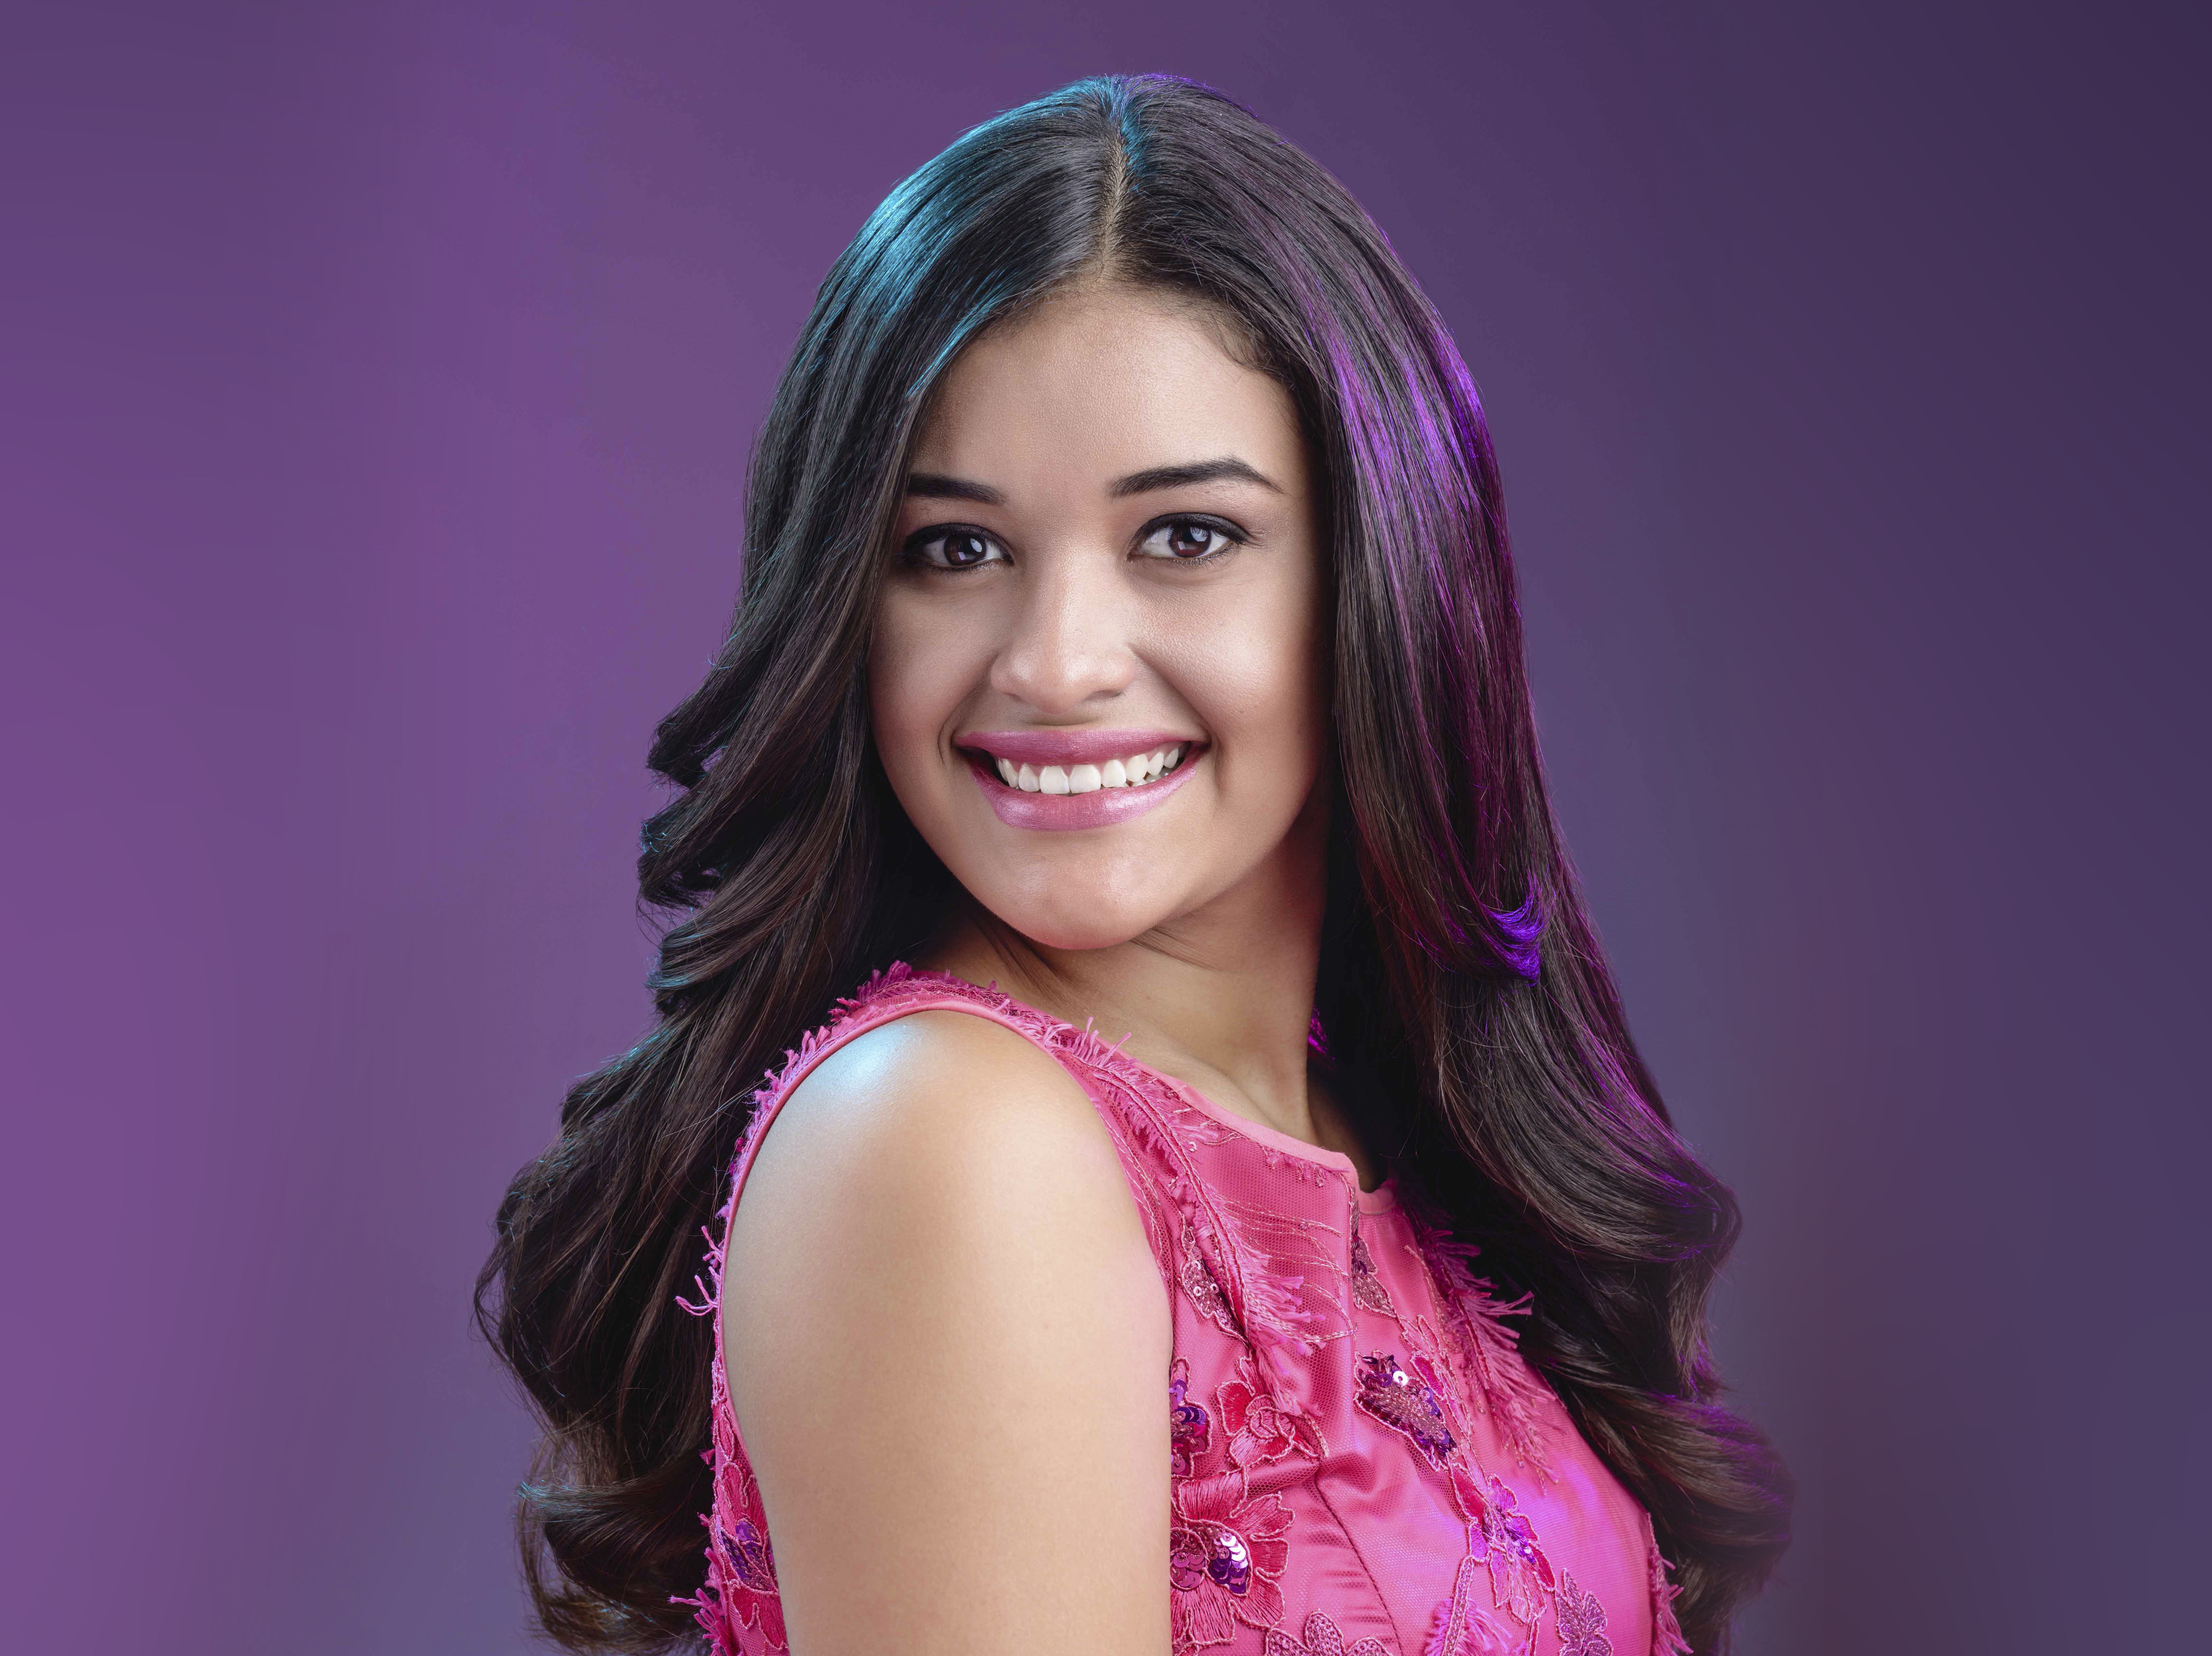 Aryely Oporta, Miss Teen Nicaragua